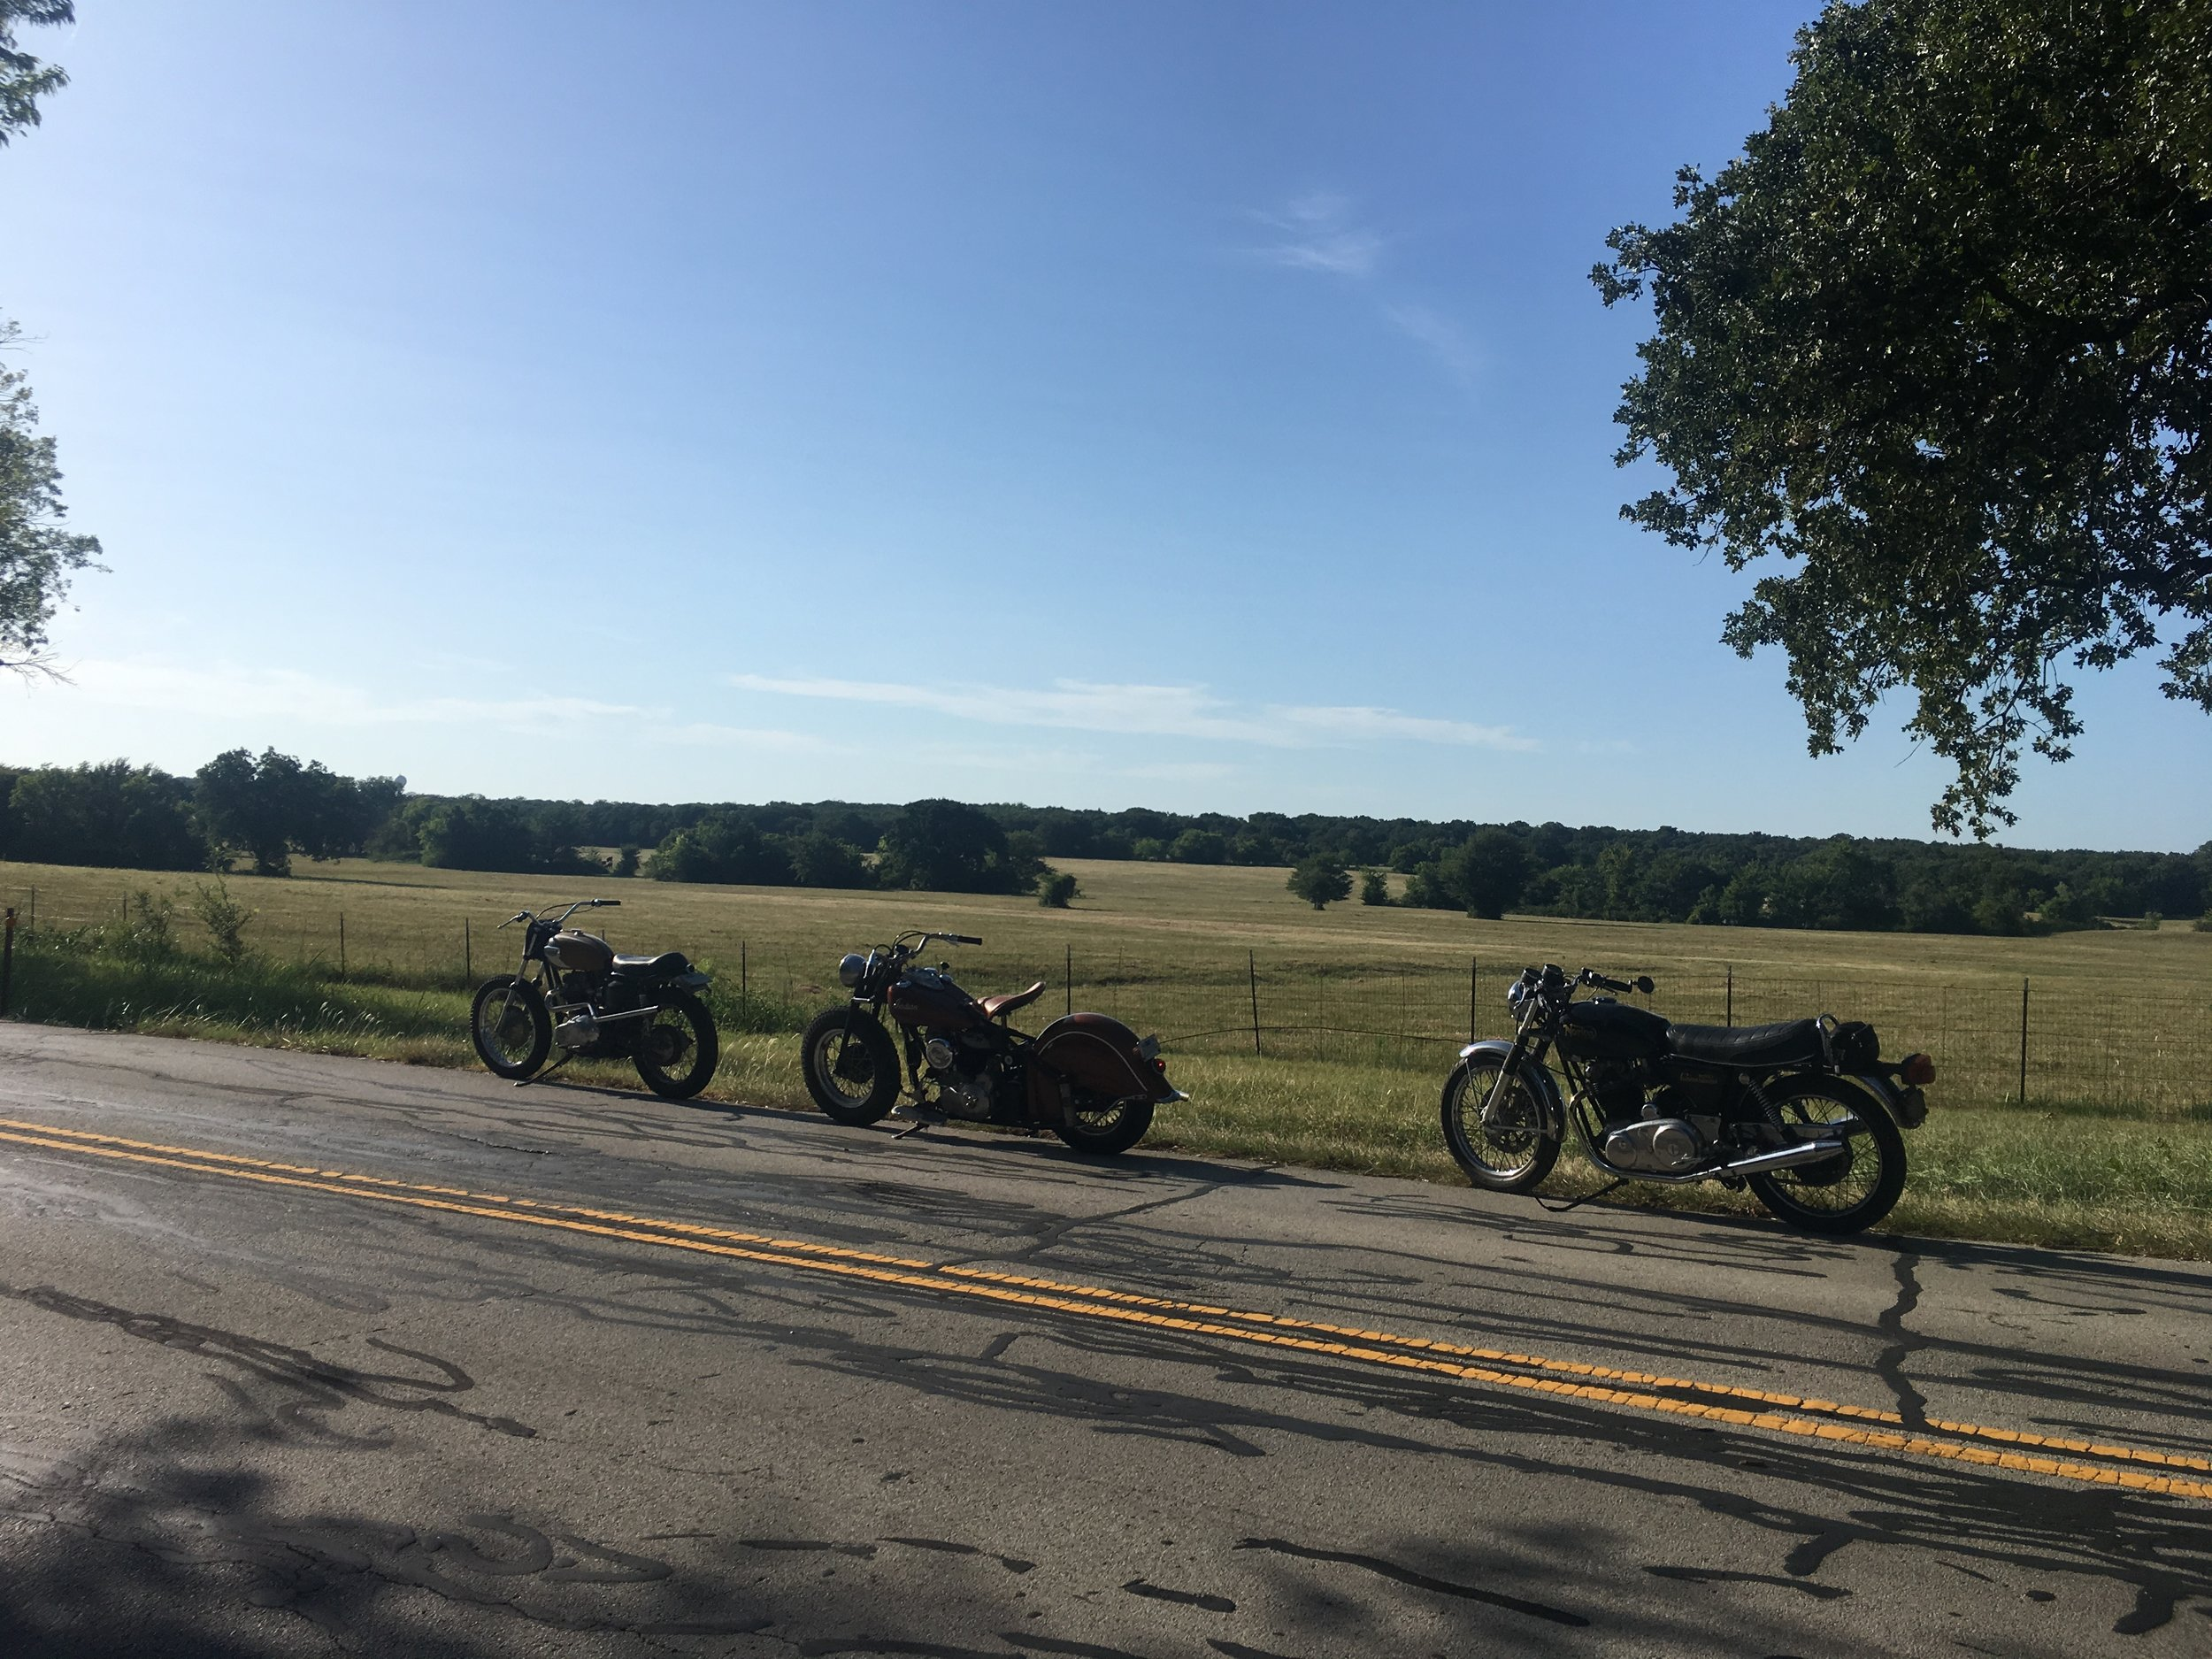 Goldie. the '48 Indian, and the '74 Commando on the roadside in Argyle, Texas.